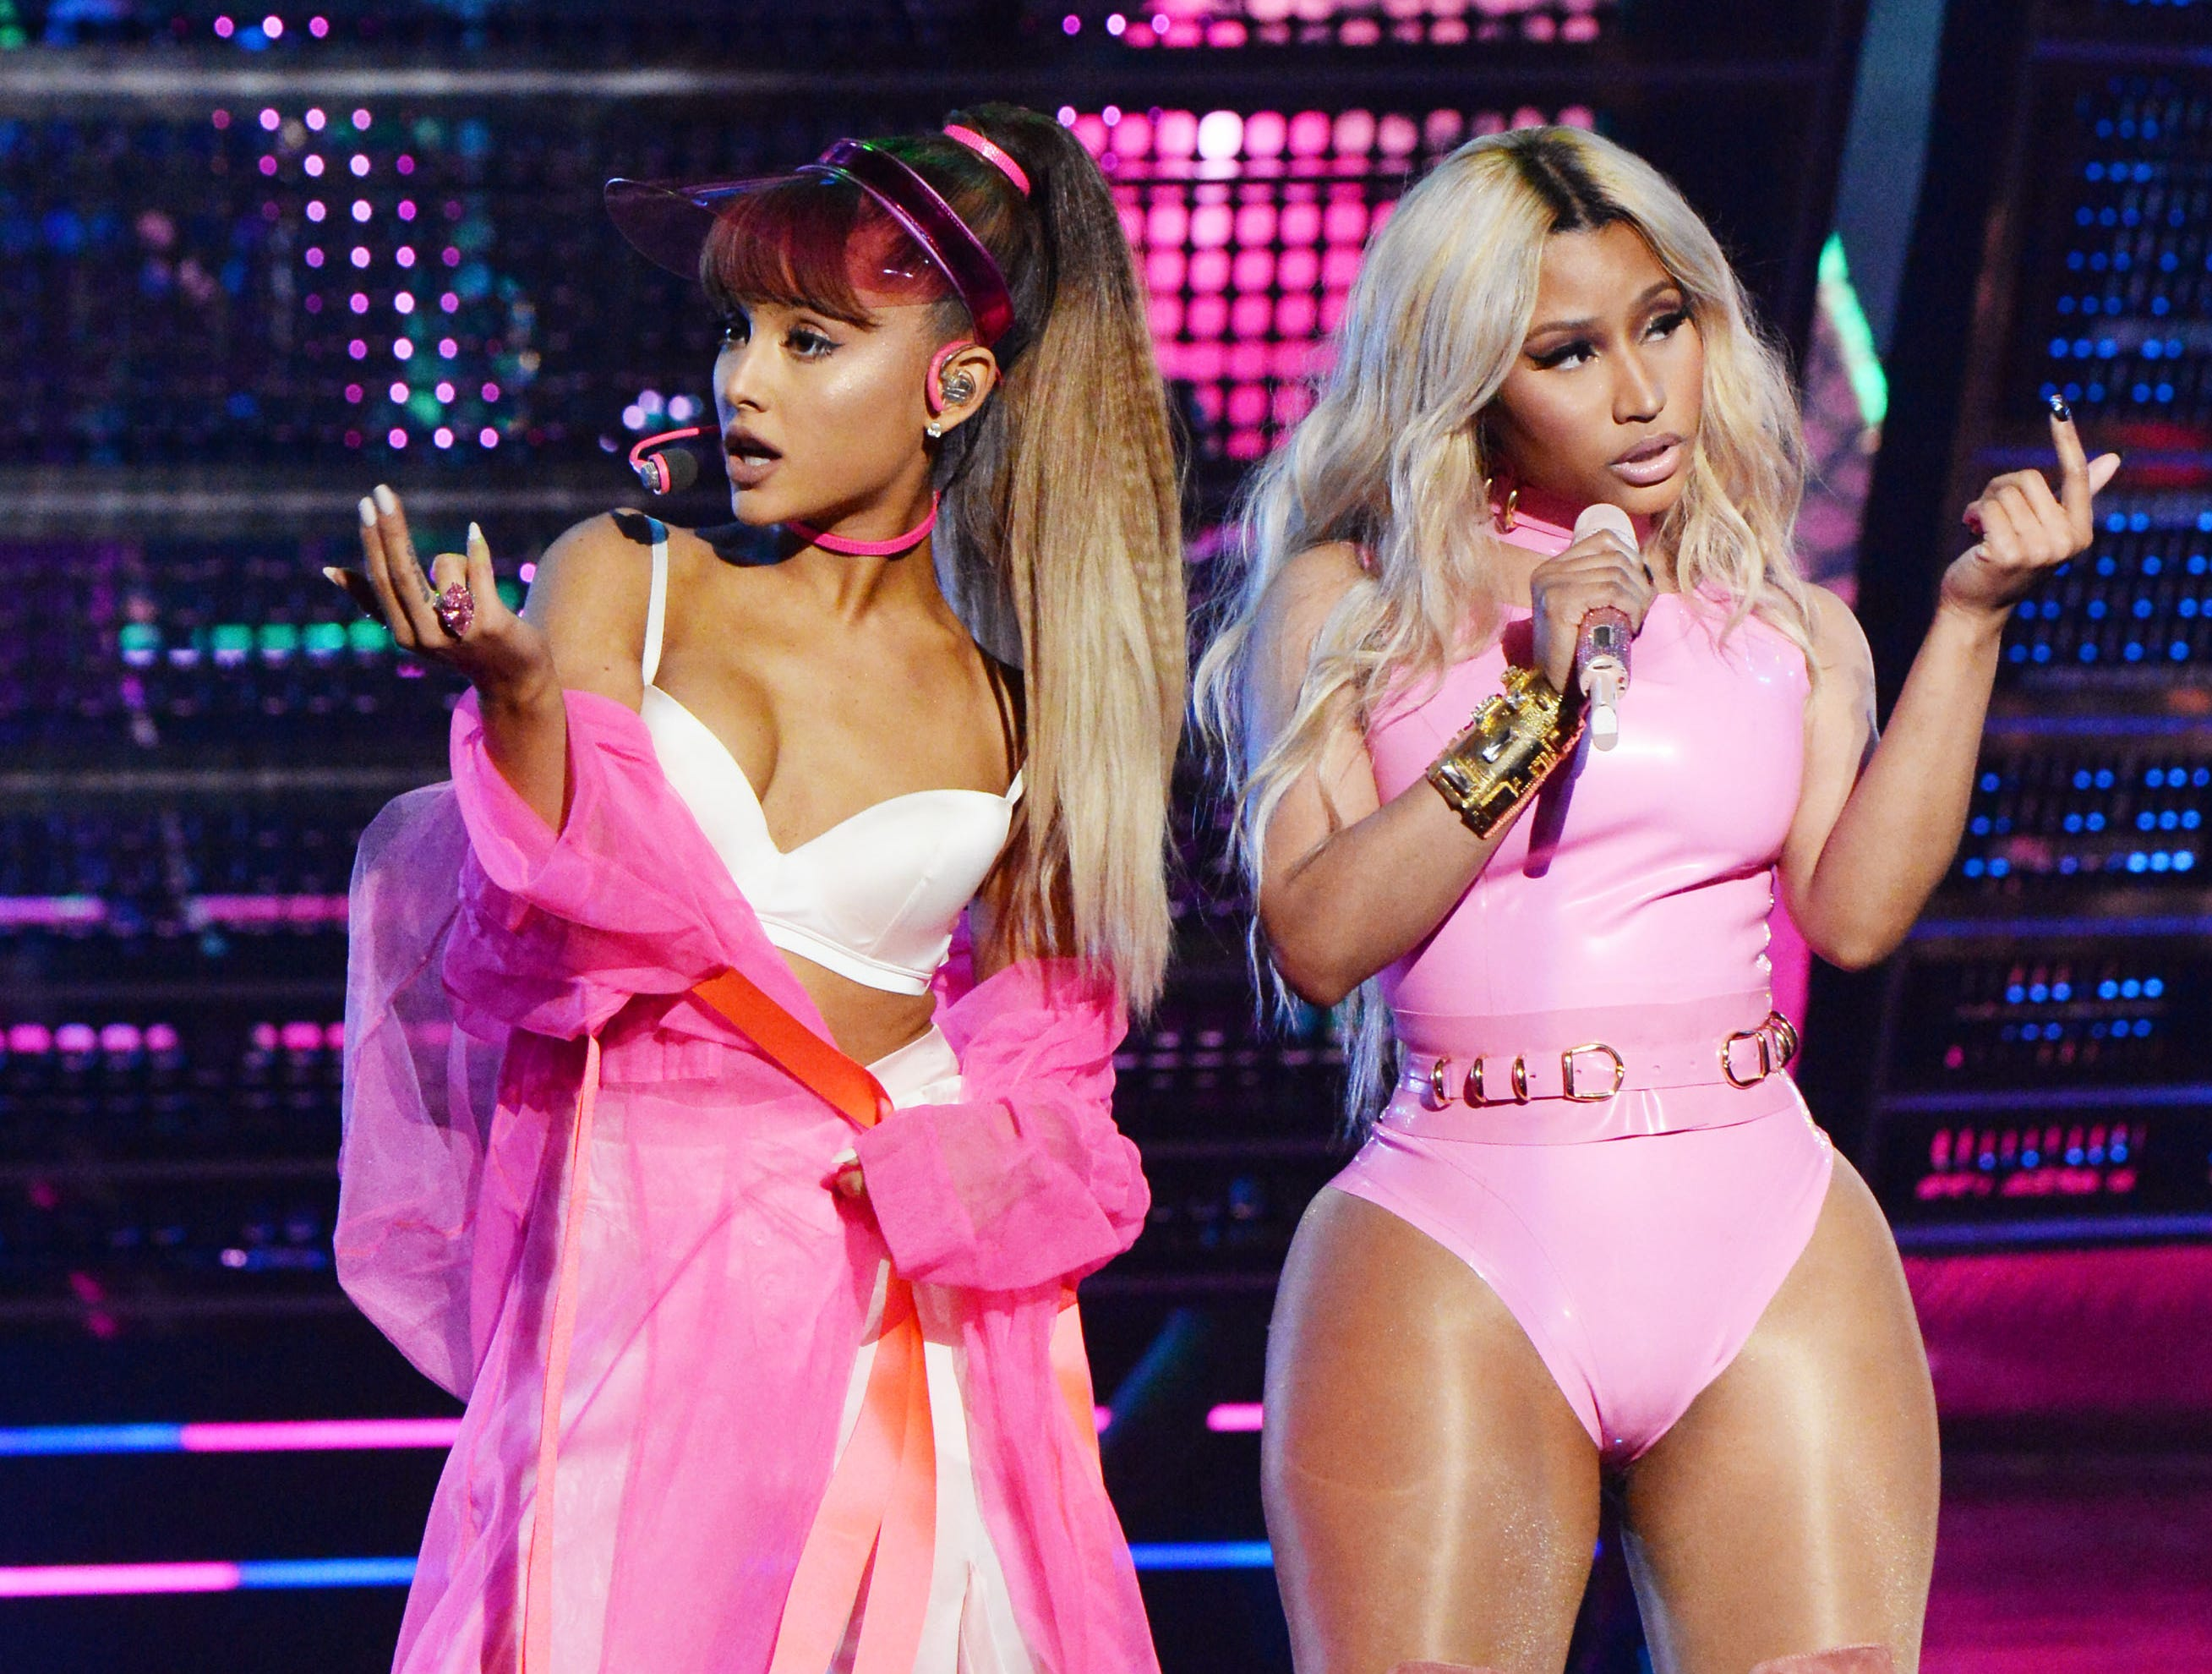 NEW YORK, NY - AUGUST 28:  Ariana Grande and Nicki Minaj perform onstage during the 2016 MTV Video Music Awards at Madison Square Garden on August 28, 2016 in New York City.  (Photo by Jeff Kravitz/FilmMagic) ORG XMIT: 661821829 ORIG FILE ID: 597570036